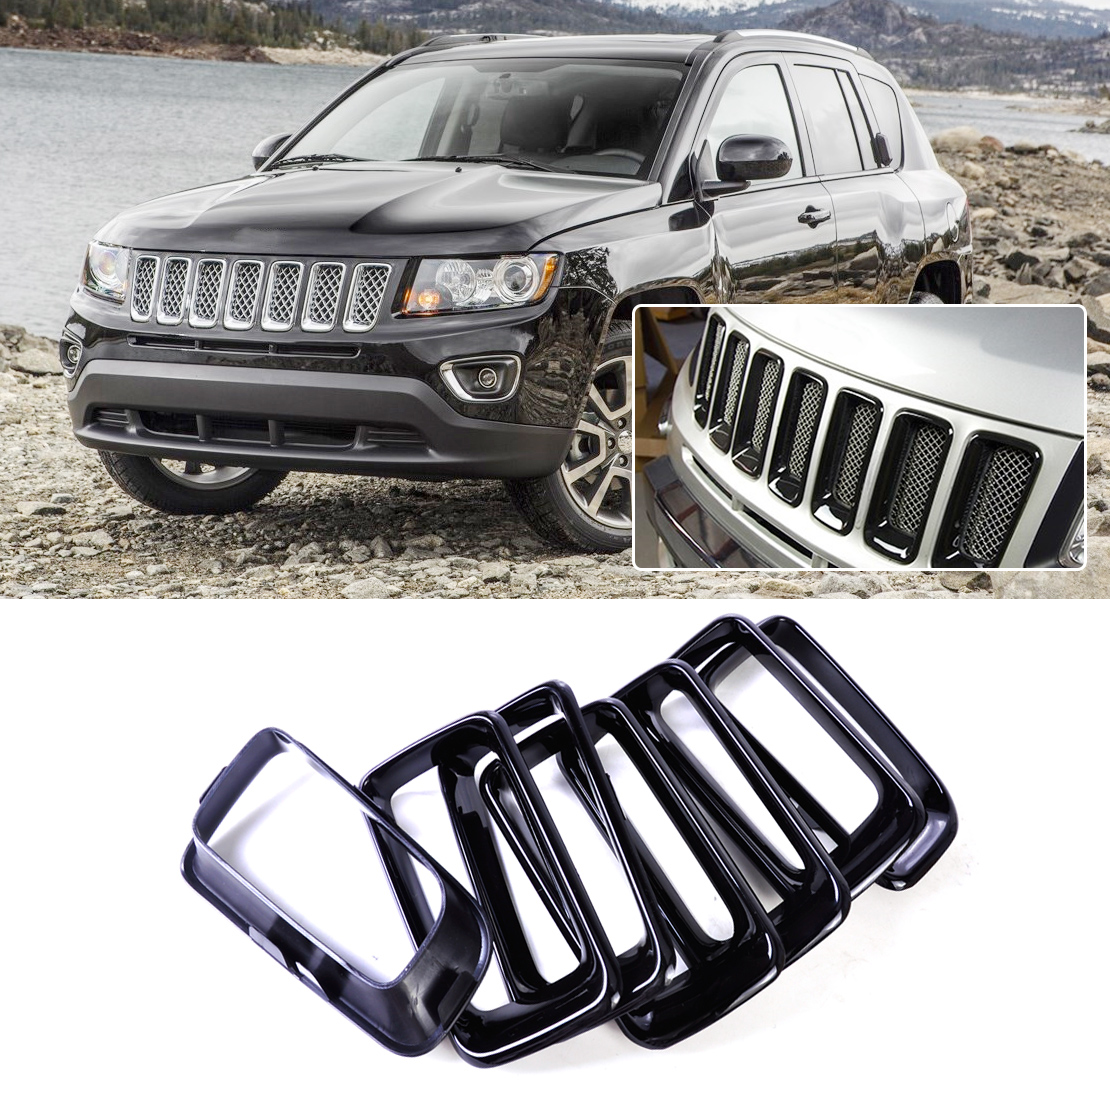 CITALL 7pcs ABS Front Grille Vent Hole Cover Trim Insert Frame Billet Vertical for Jeep Compass